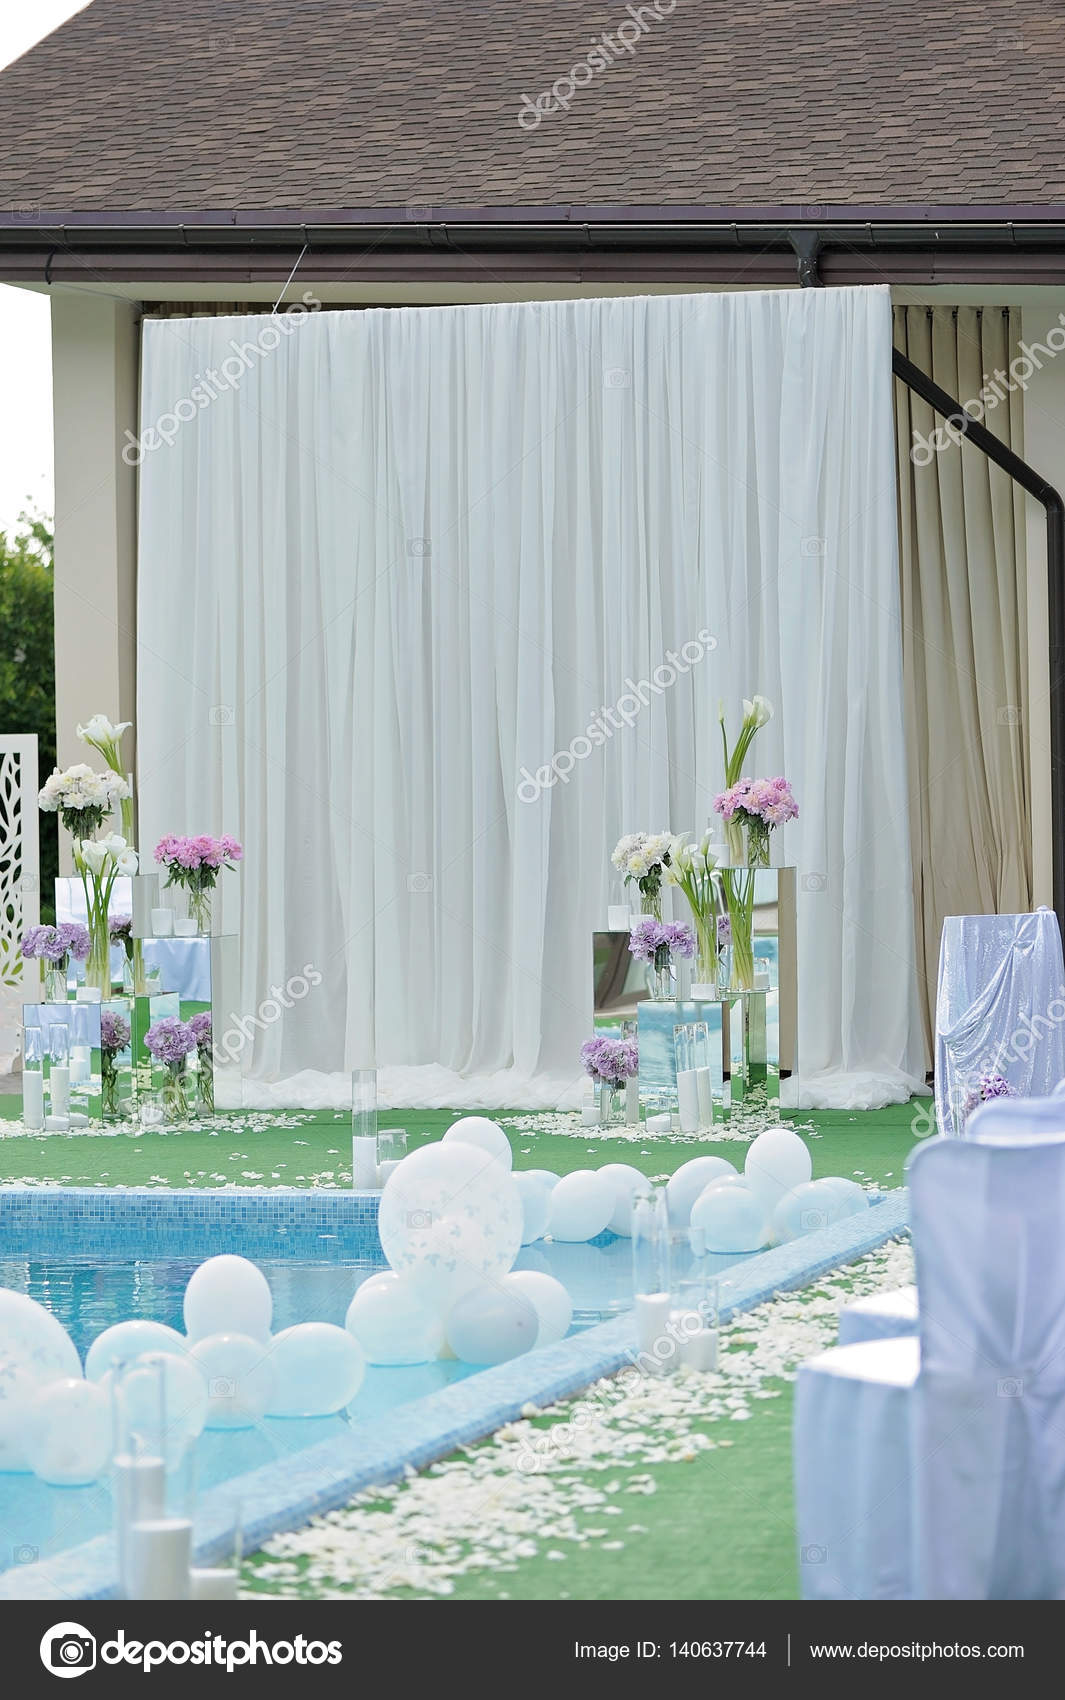 Pool Blue Wedding Decorations Decorations For The Wedding